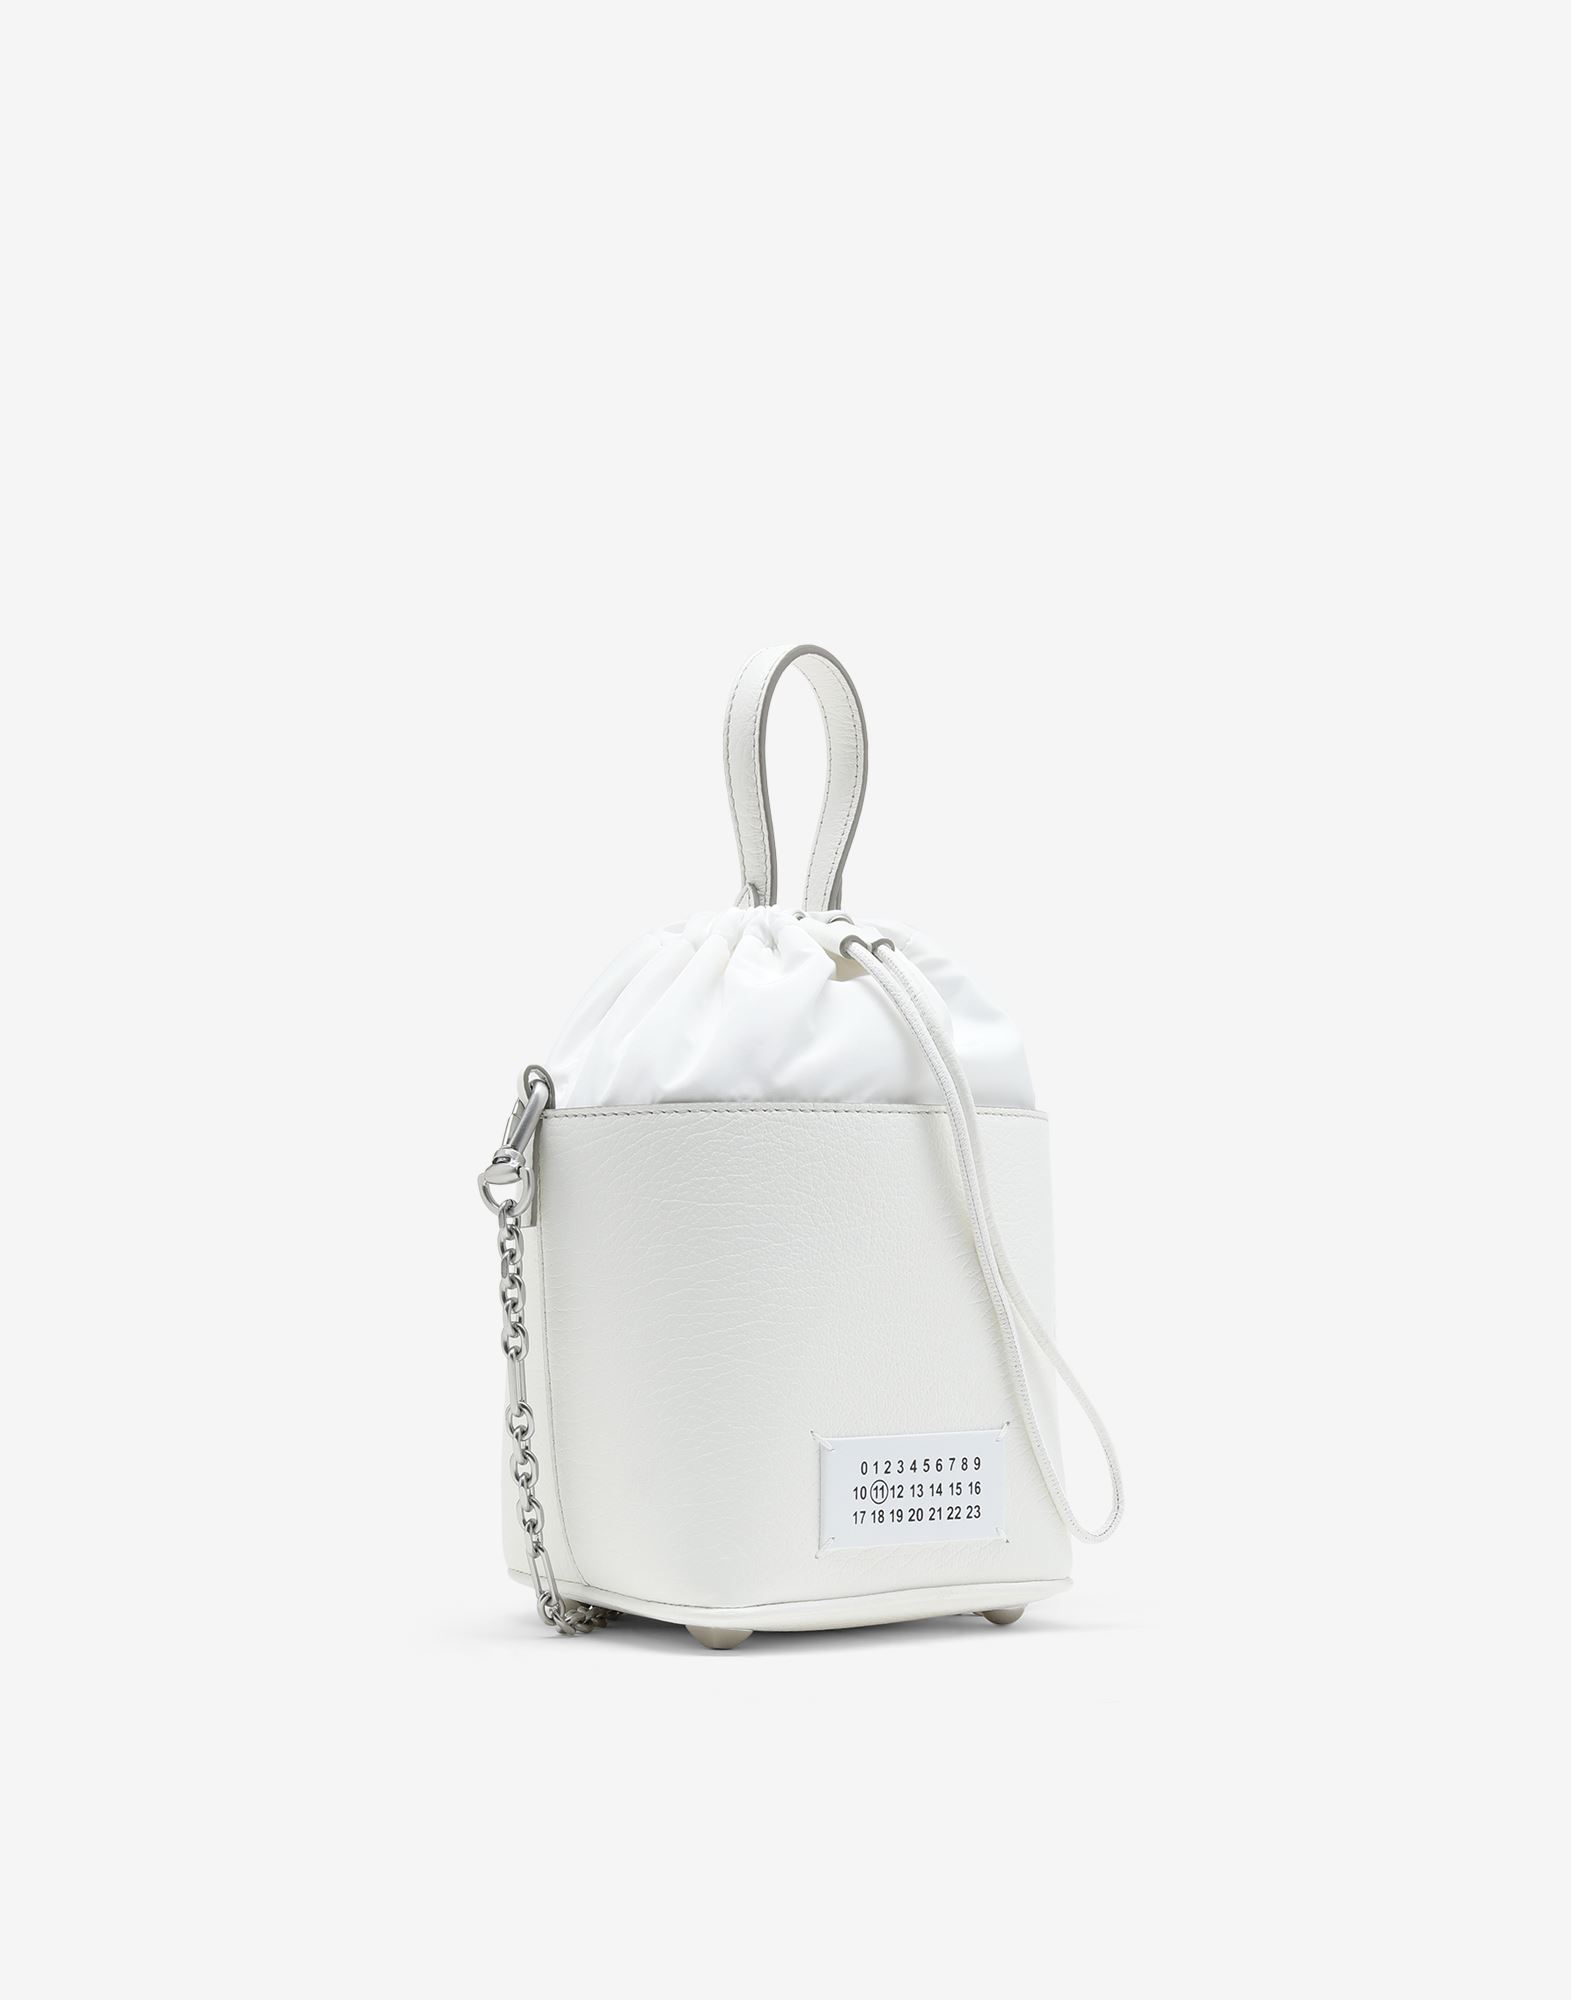 MAISON MARGIELA Textured leather bucket bag  Shoulder bag Woman r